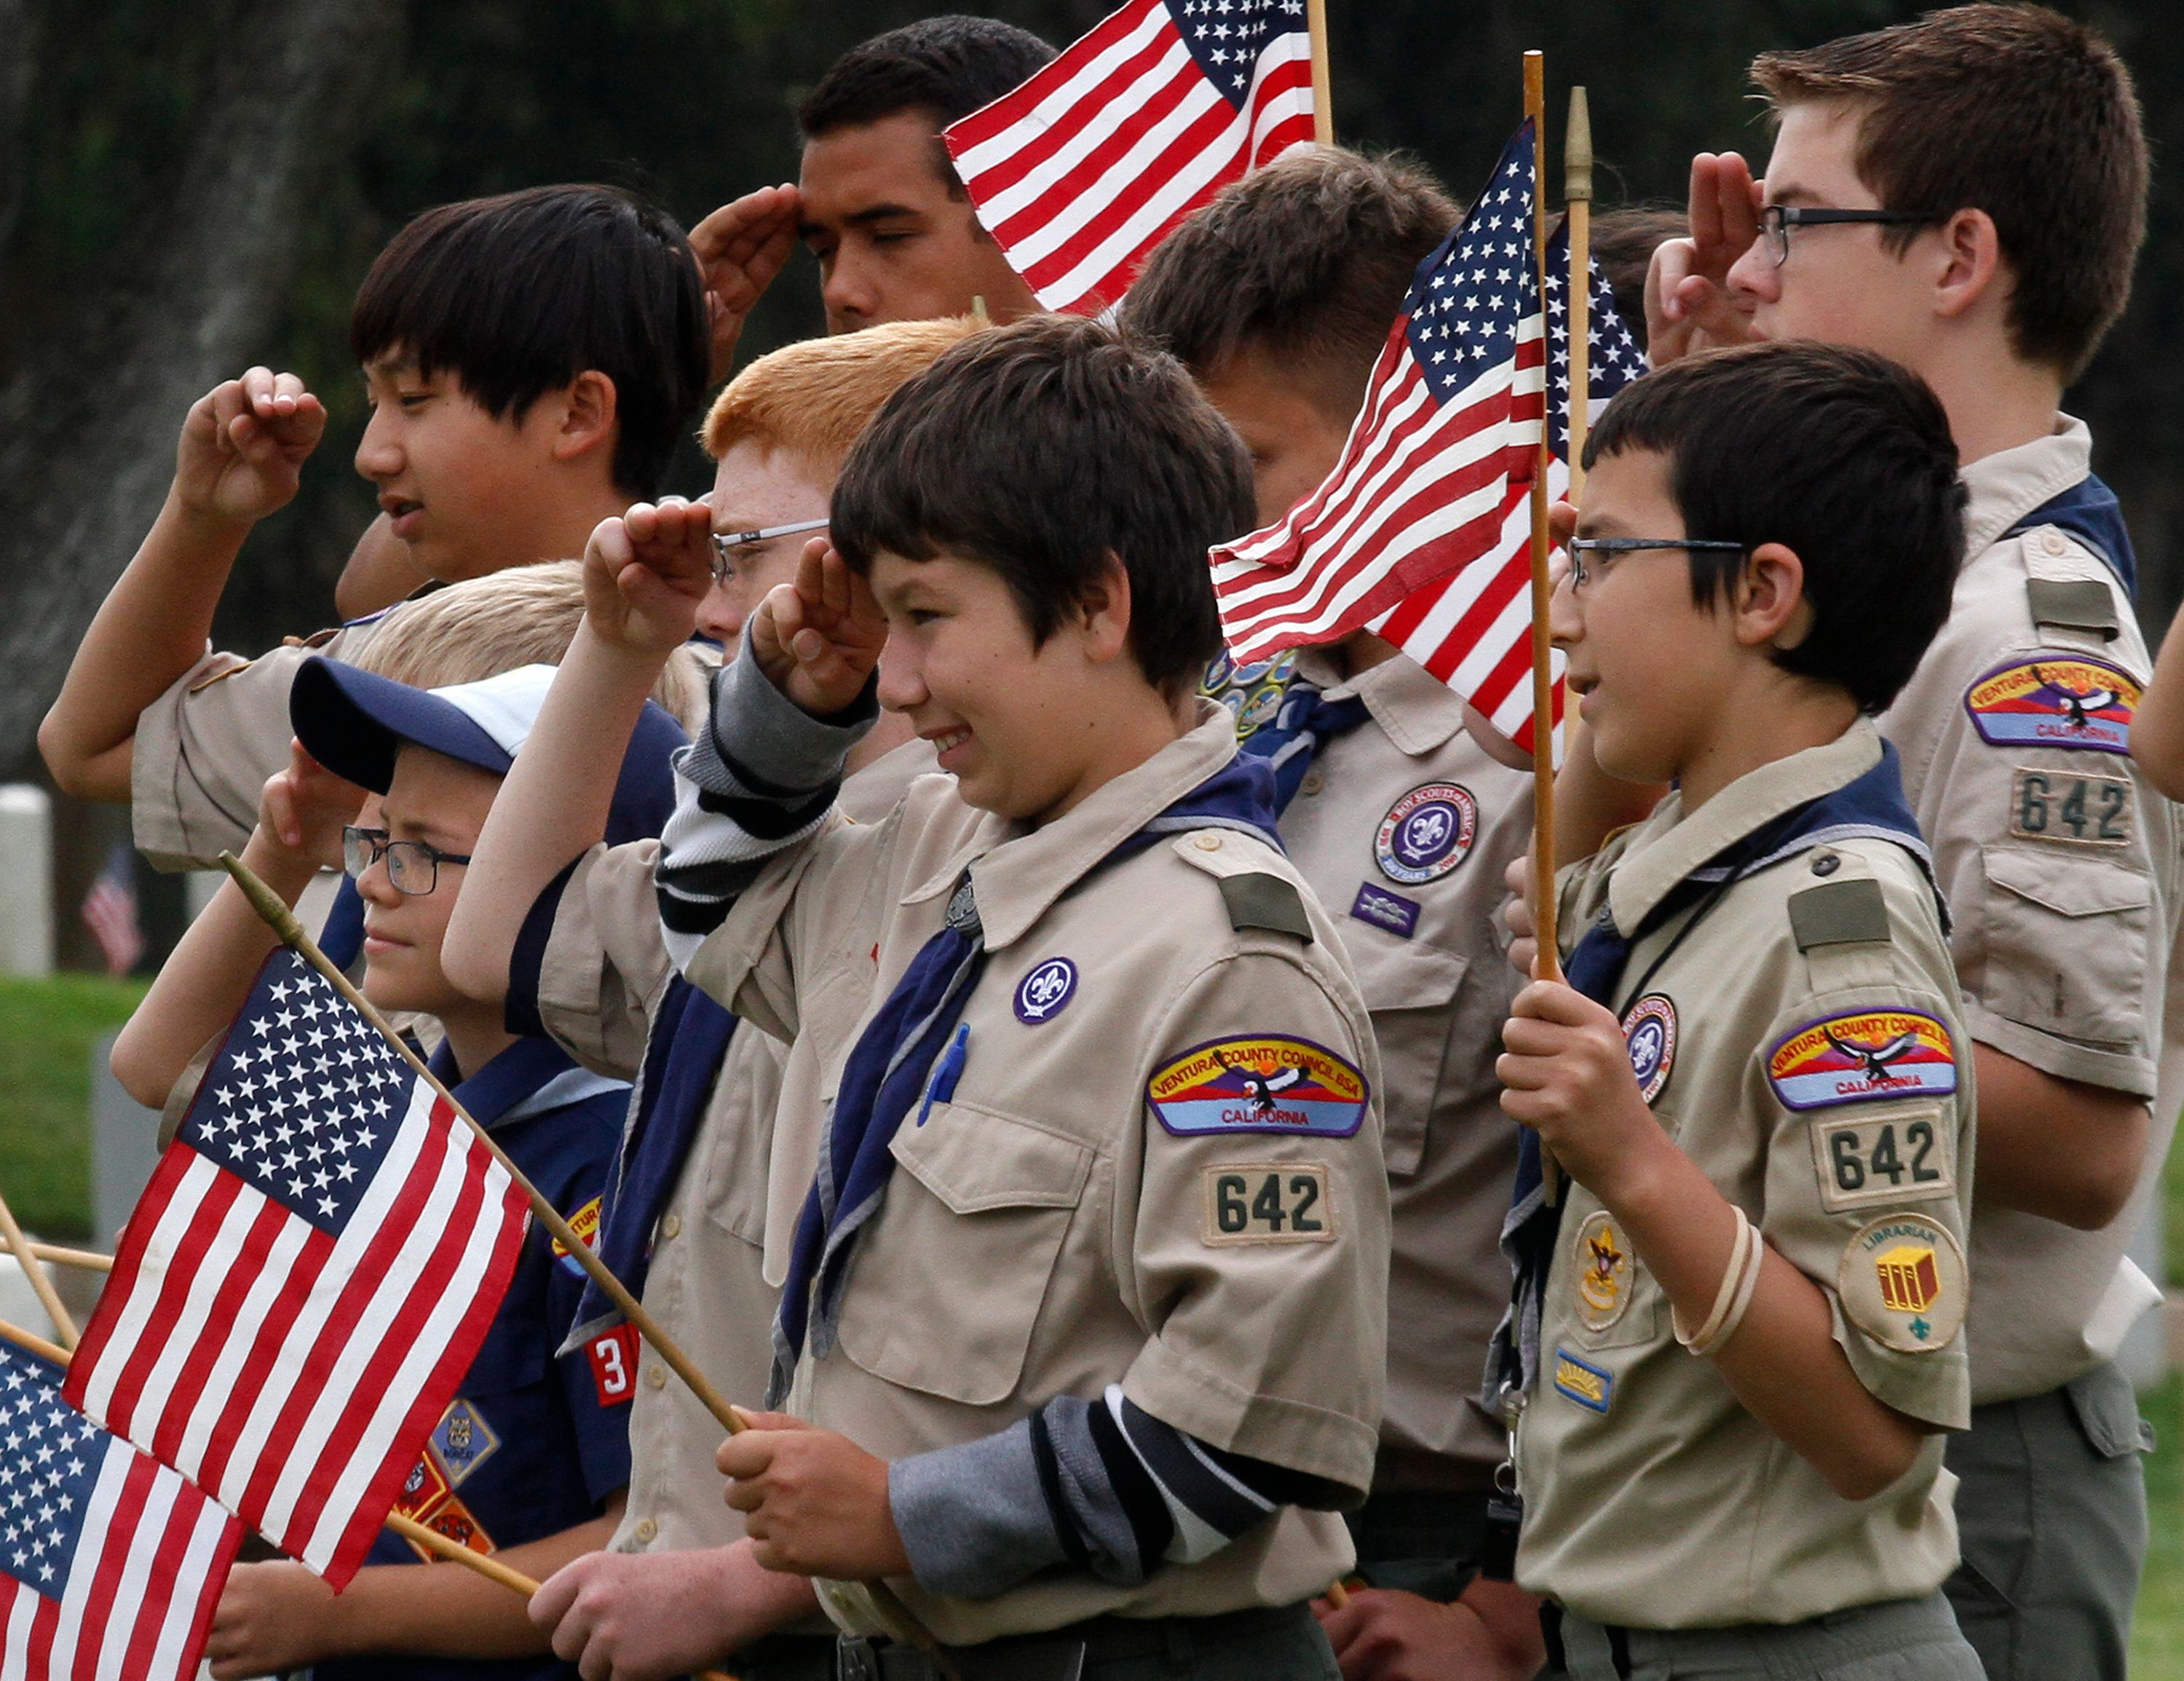 Boy Scouts of America troop members attend a Memorial Day weekend commemorative event in Los Angeles, California, May 25, 2013. REUTERS/Jonathan Alcorn (UNITED STATES - Tags: SOCIETY ANNIVERSARY)